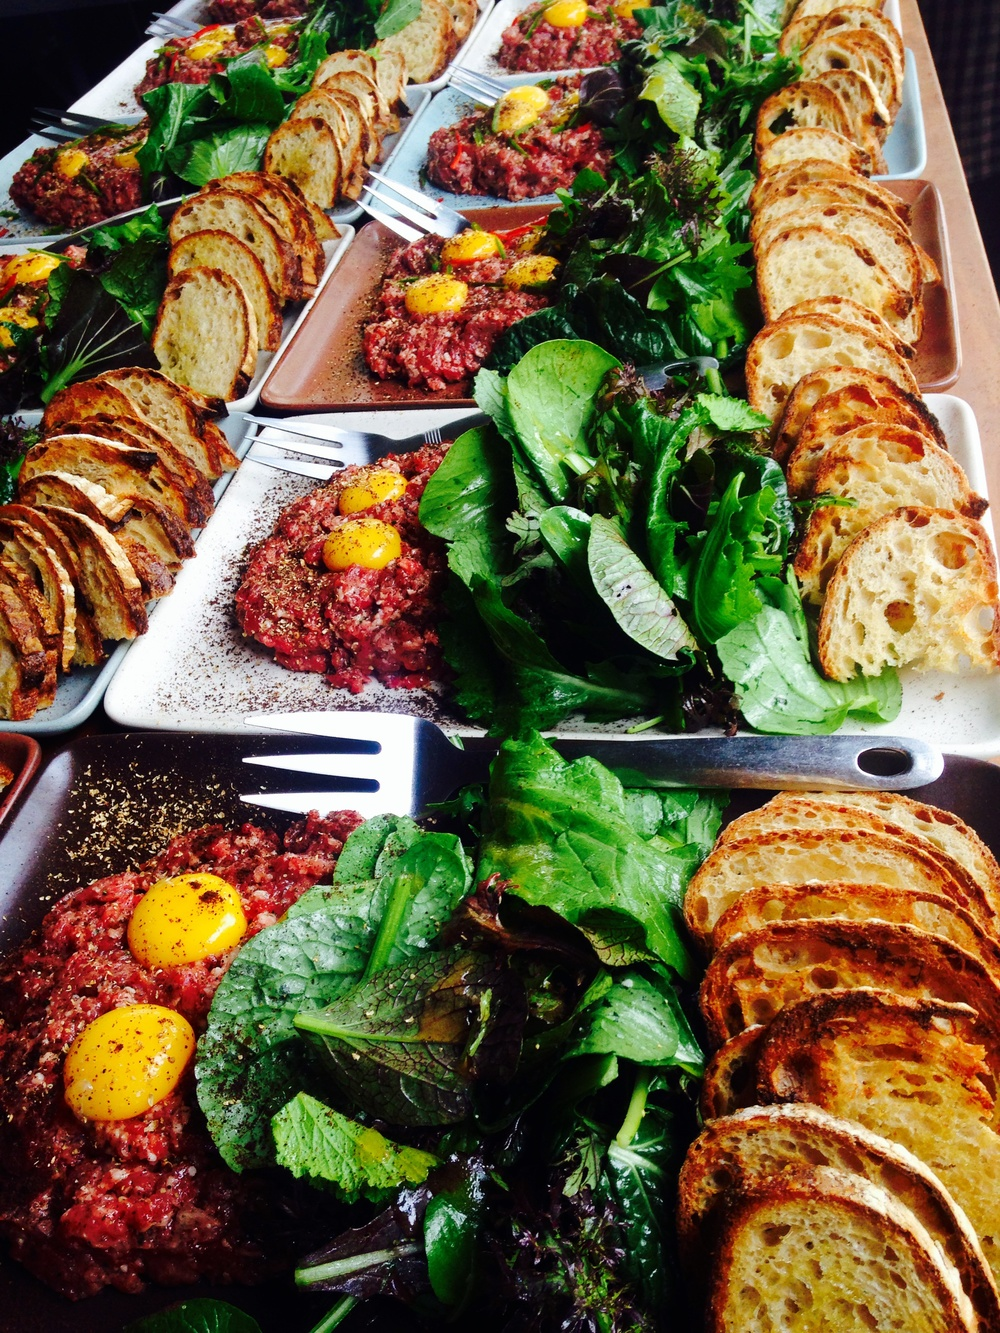 A Feast of Lamb Tartare with Bitter Greens and Crustini